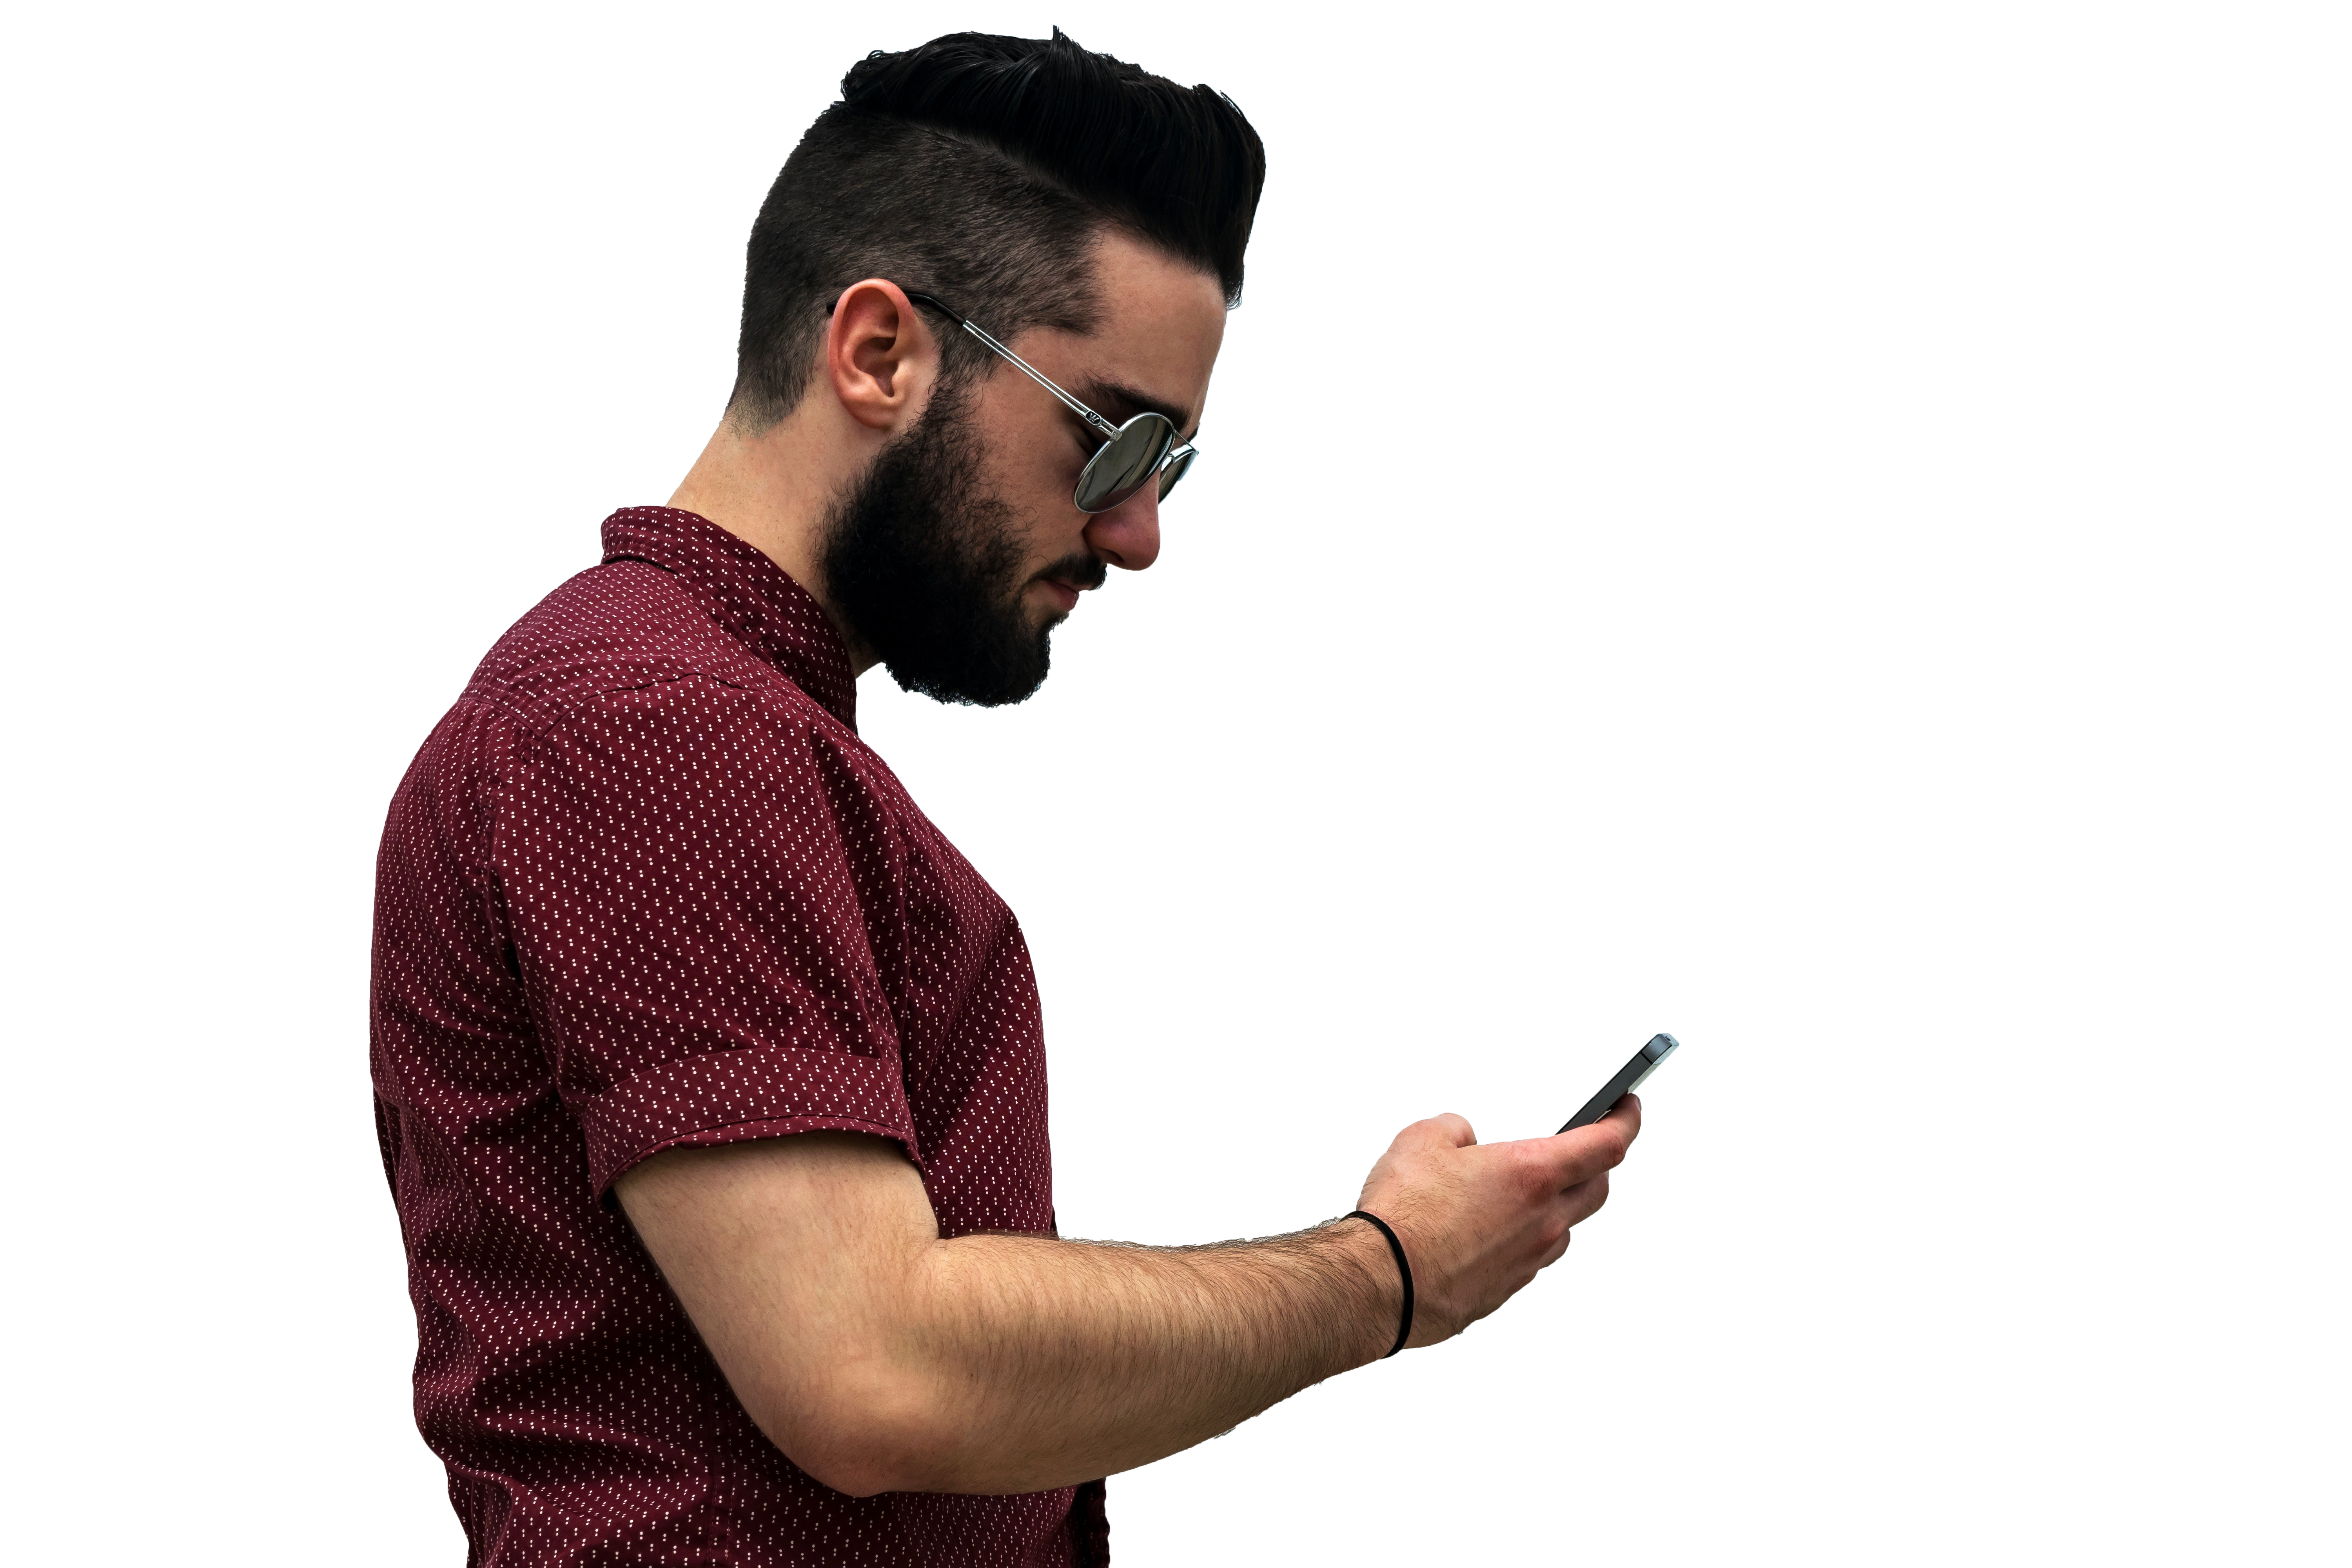 Man wearing Goggles with mobile in hand with transparent background PNG